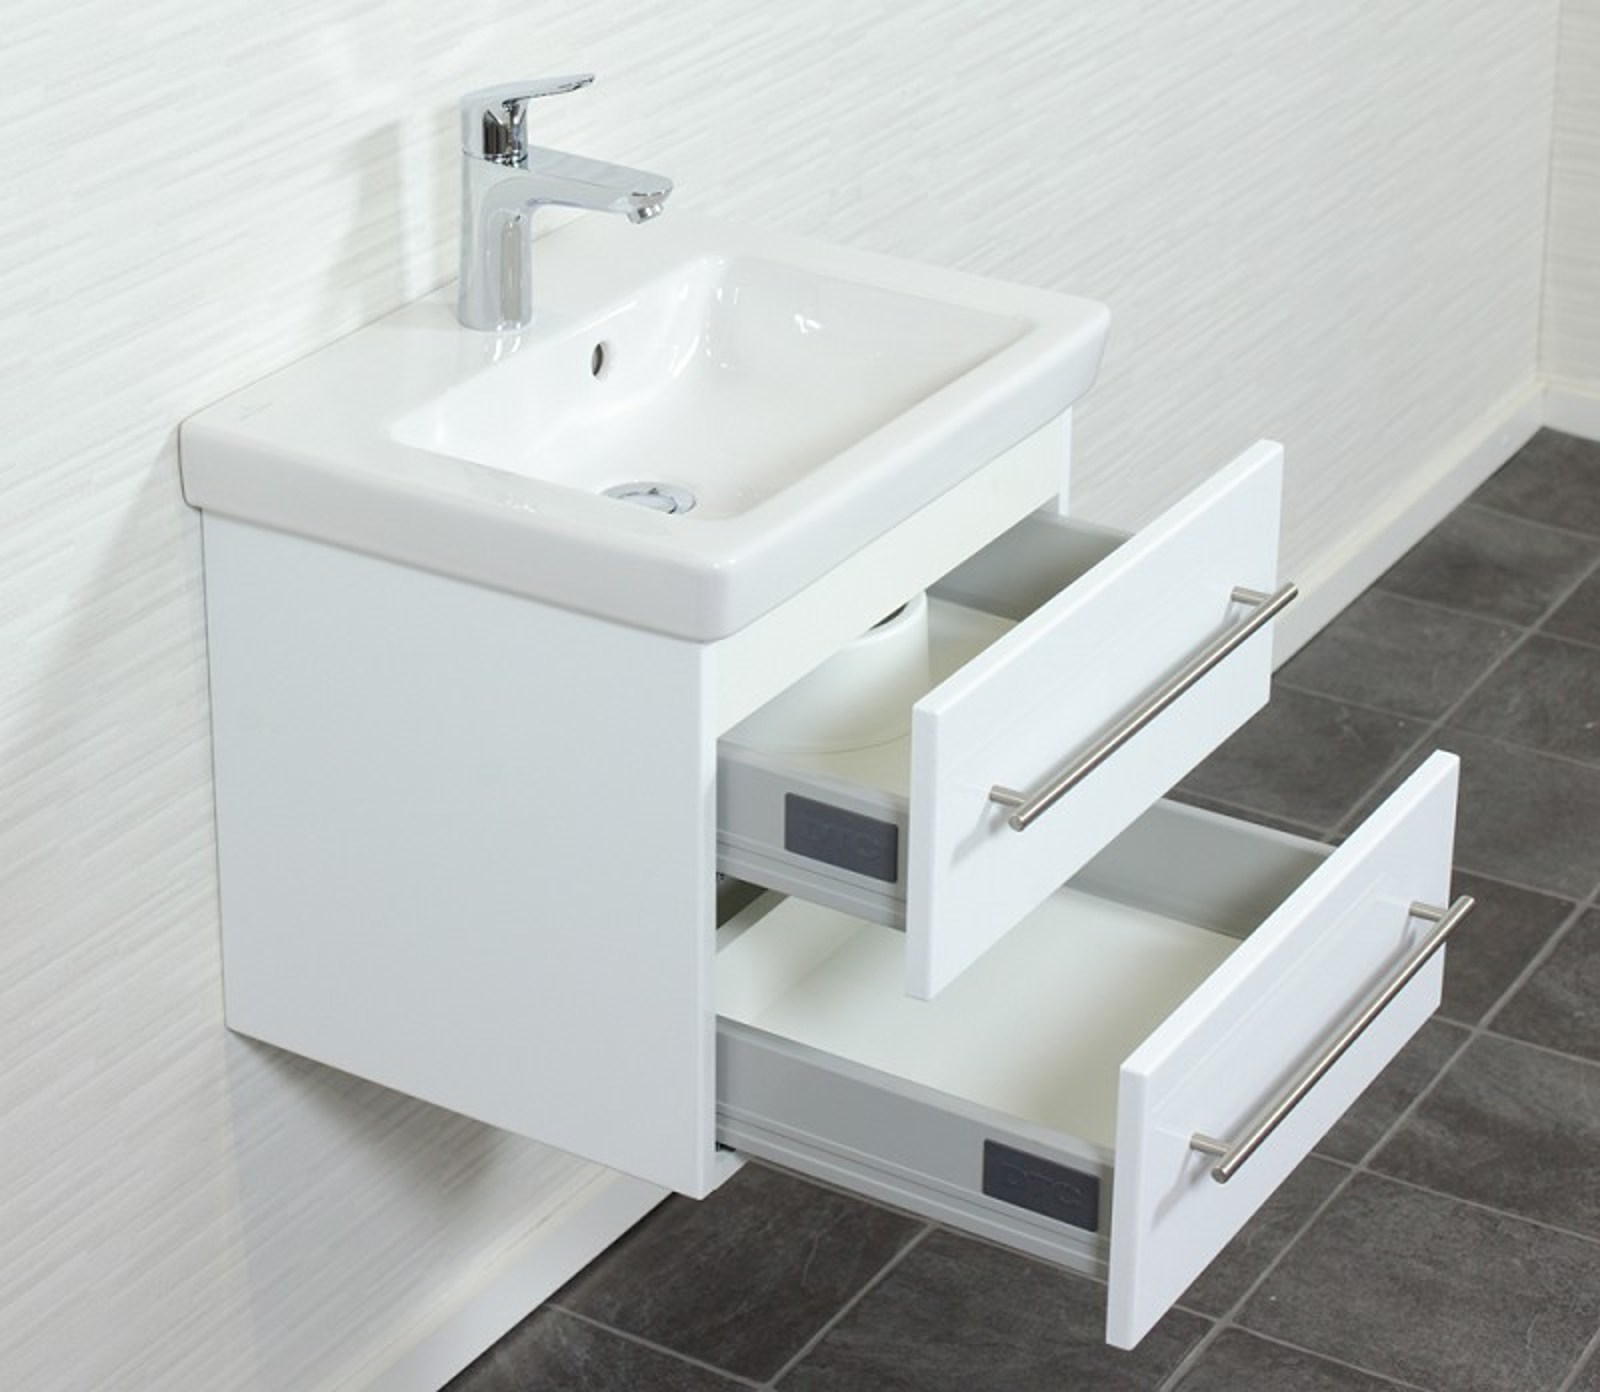 waschtisch unterschrank mit villeroy boch keramikbecken subway 2 0 50 cm weiss ebay. Black Bedroom Furniture Sets. Home Design Ideas